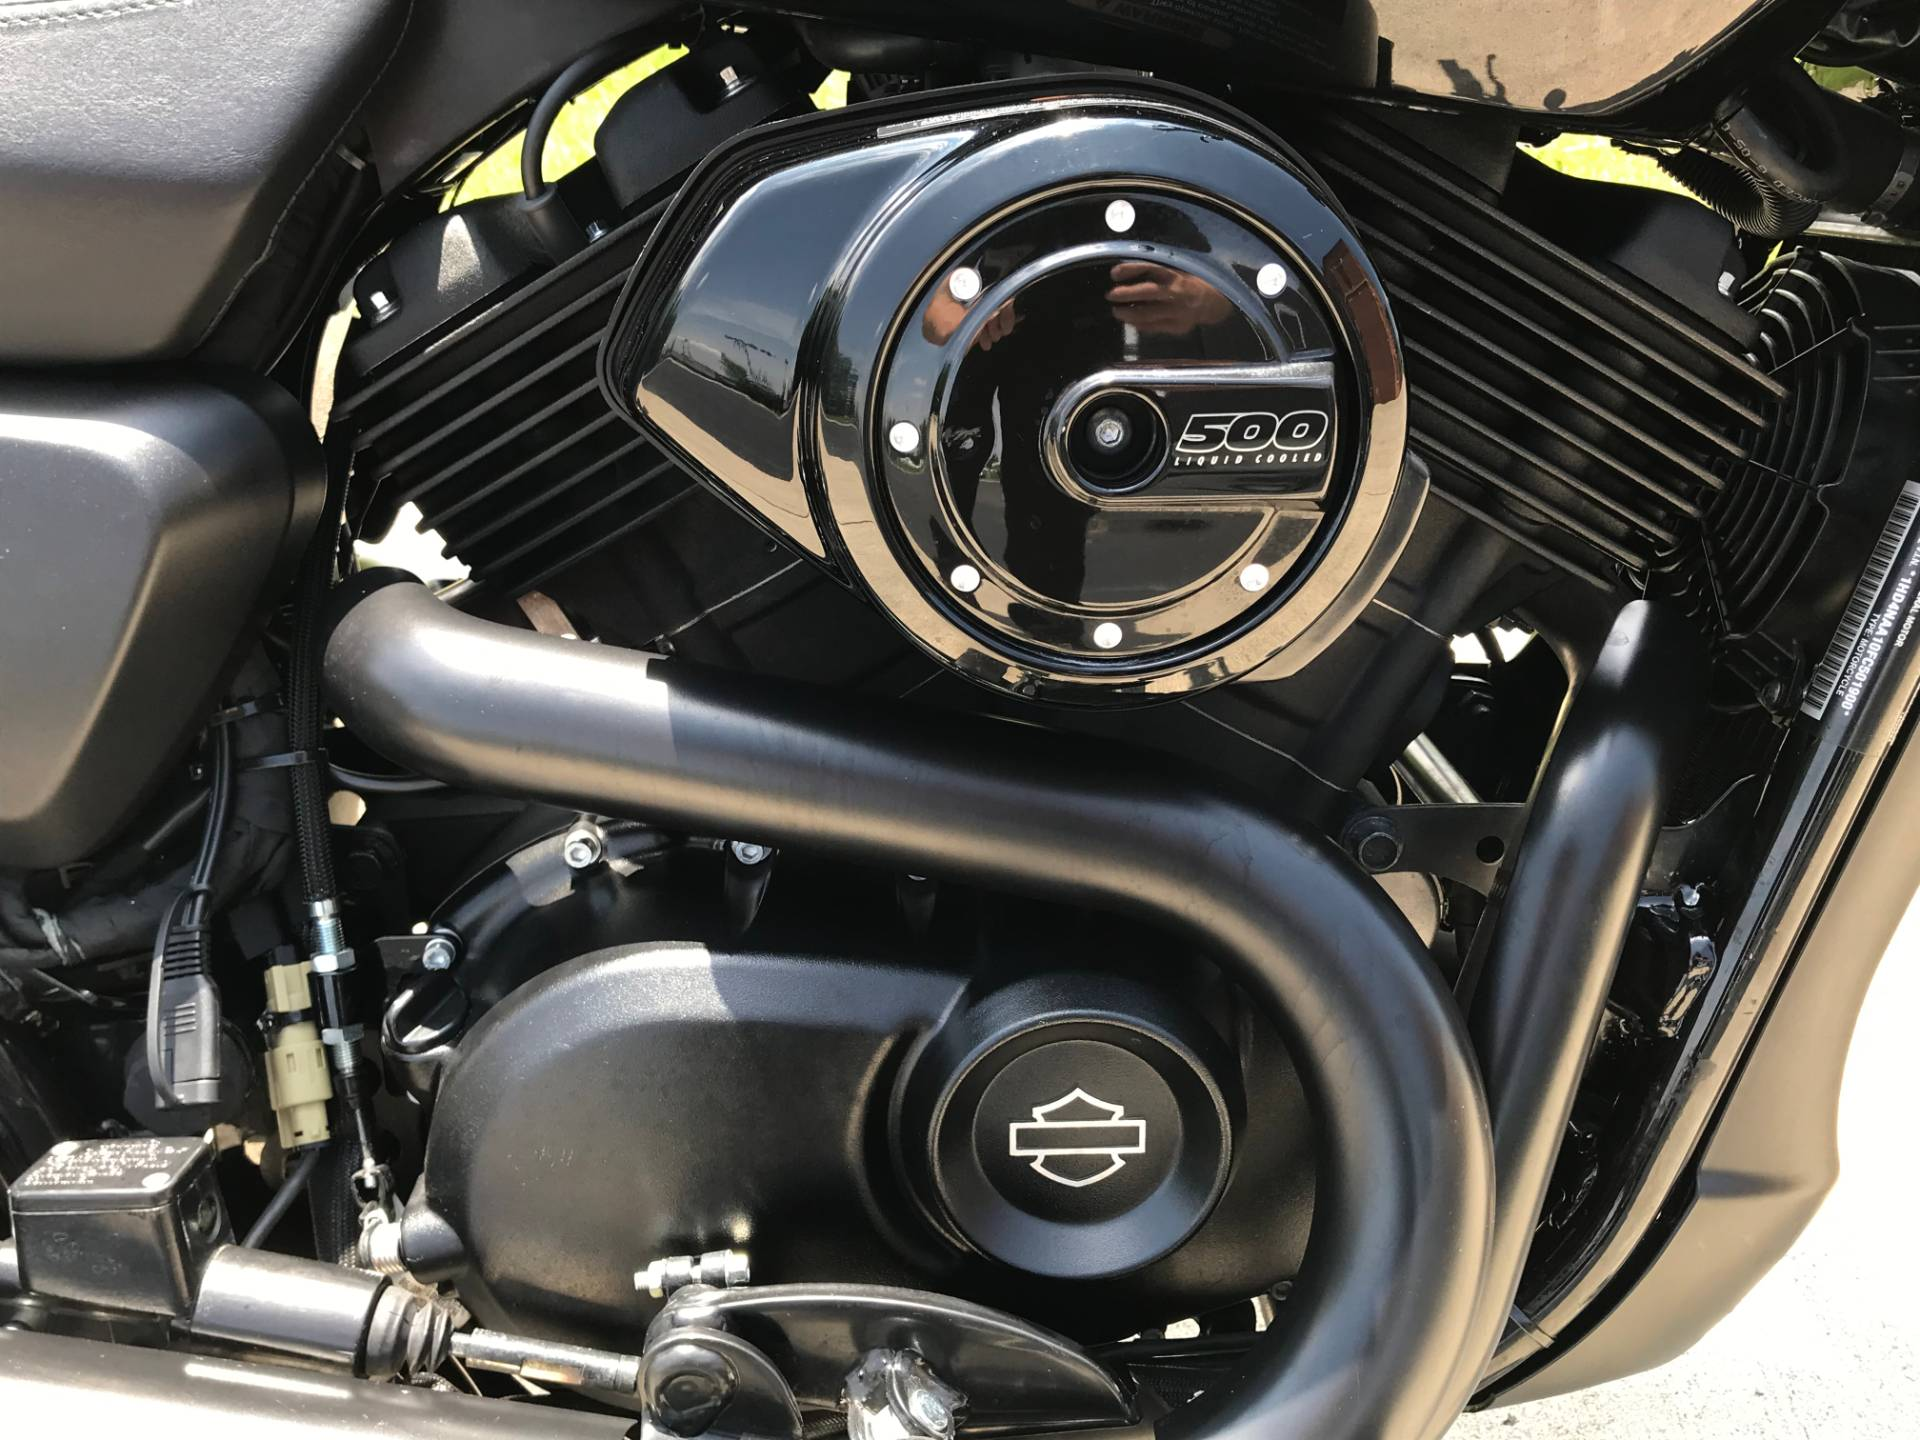 2015 Harley-Davidson XG500 in Sunbury, Ohio on